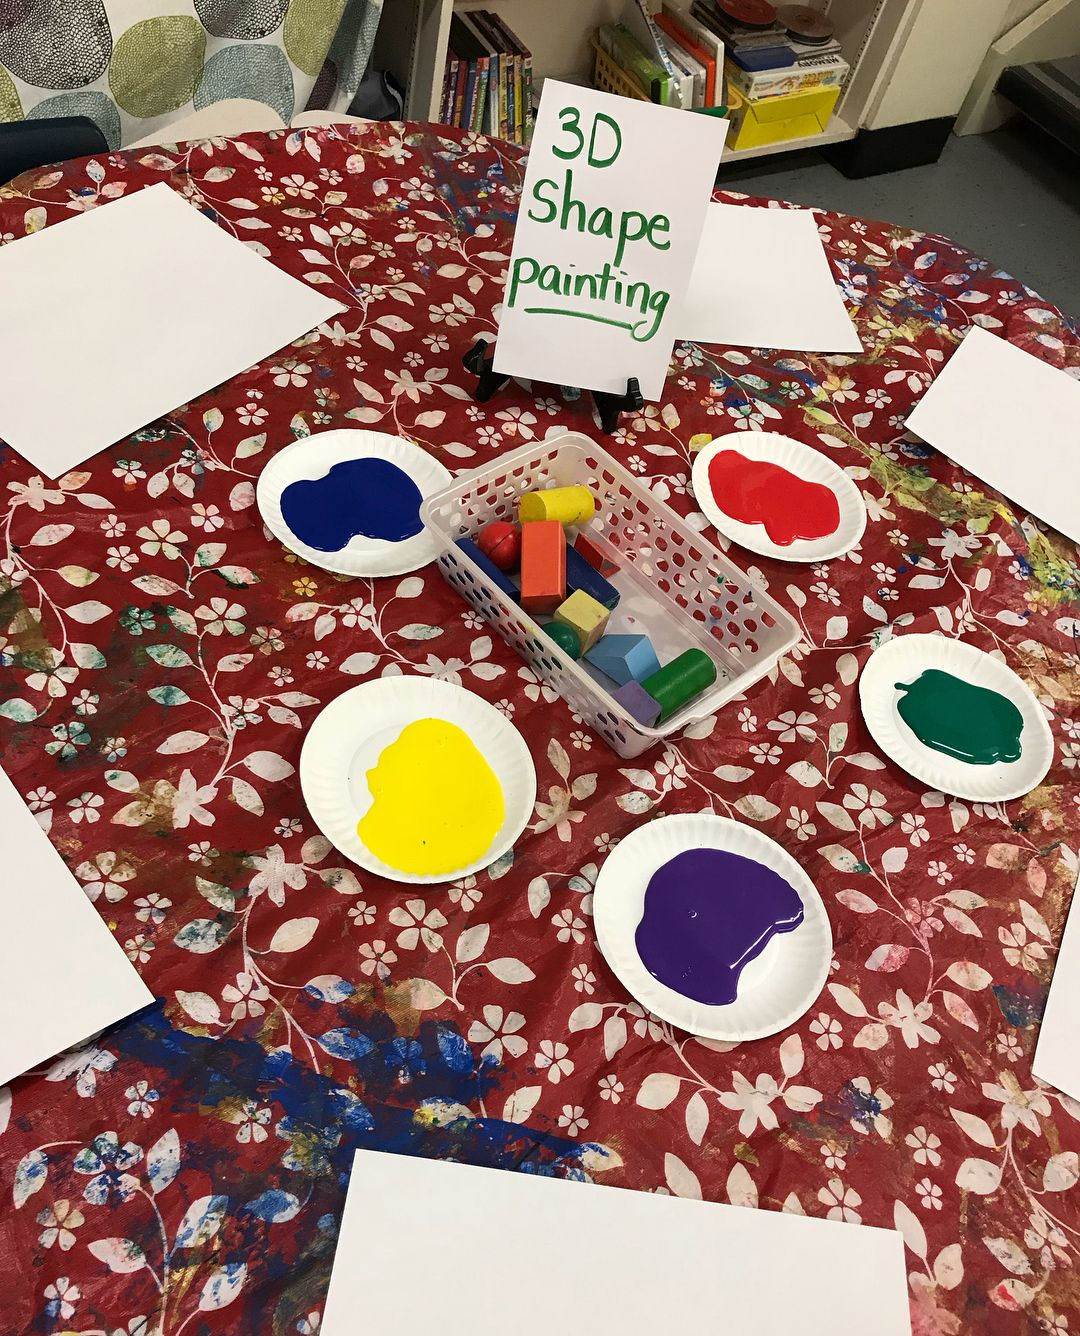 Everything Shapes 1 Painting With 3d Blocks